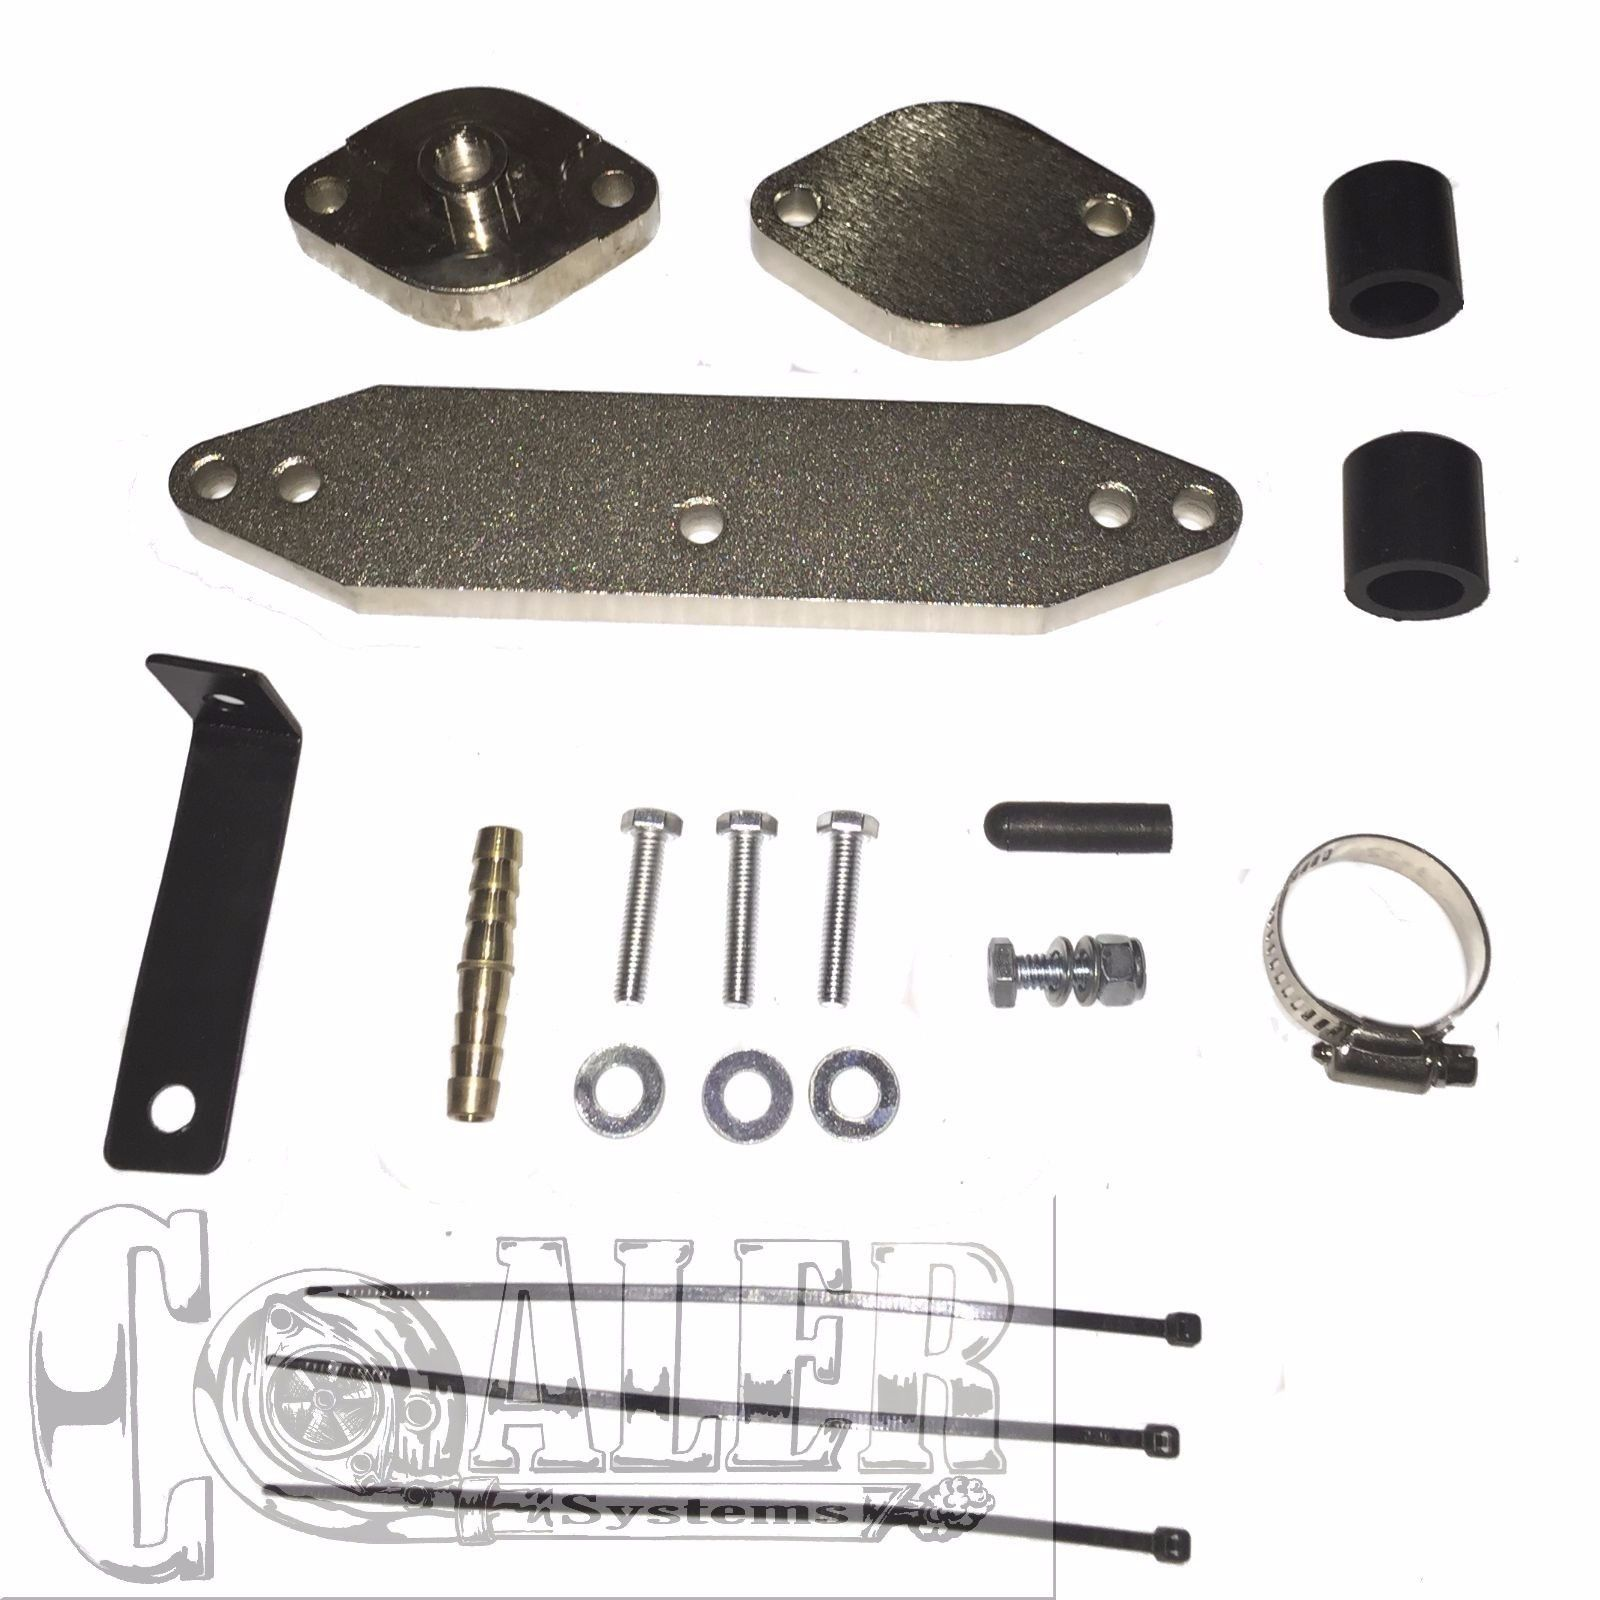 2011 2014 Ford 6 7 Powerstroke Egr Delete Kit Cooler W Factory Egt Coaler Systems Diesel And Automobile Specialty Parts